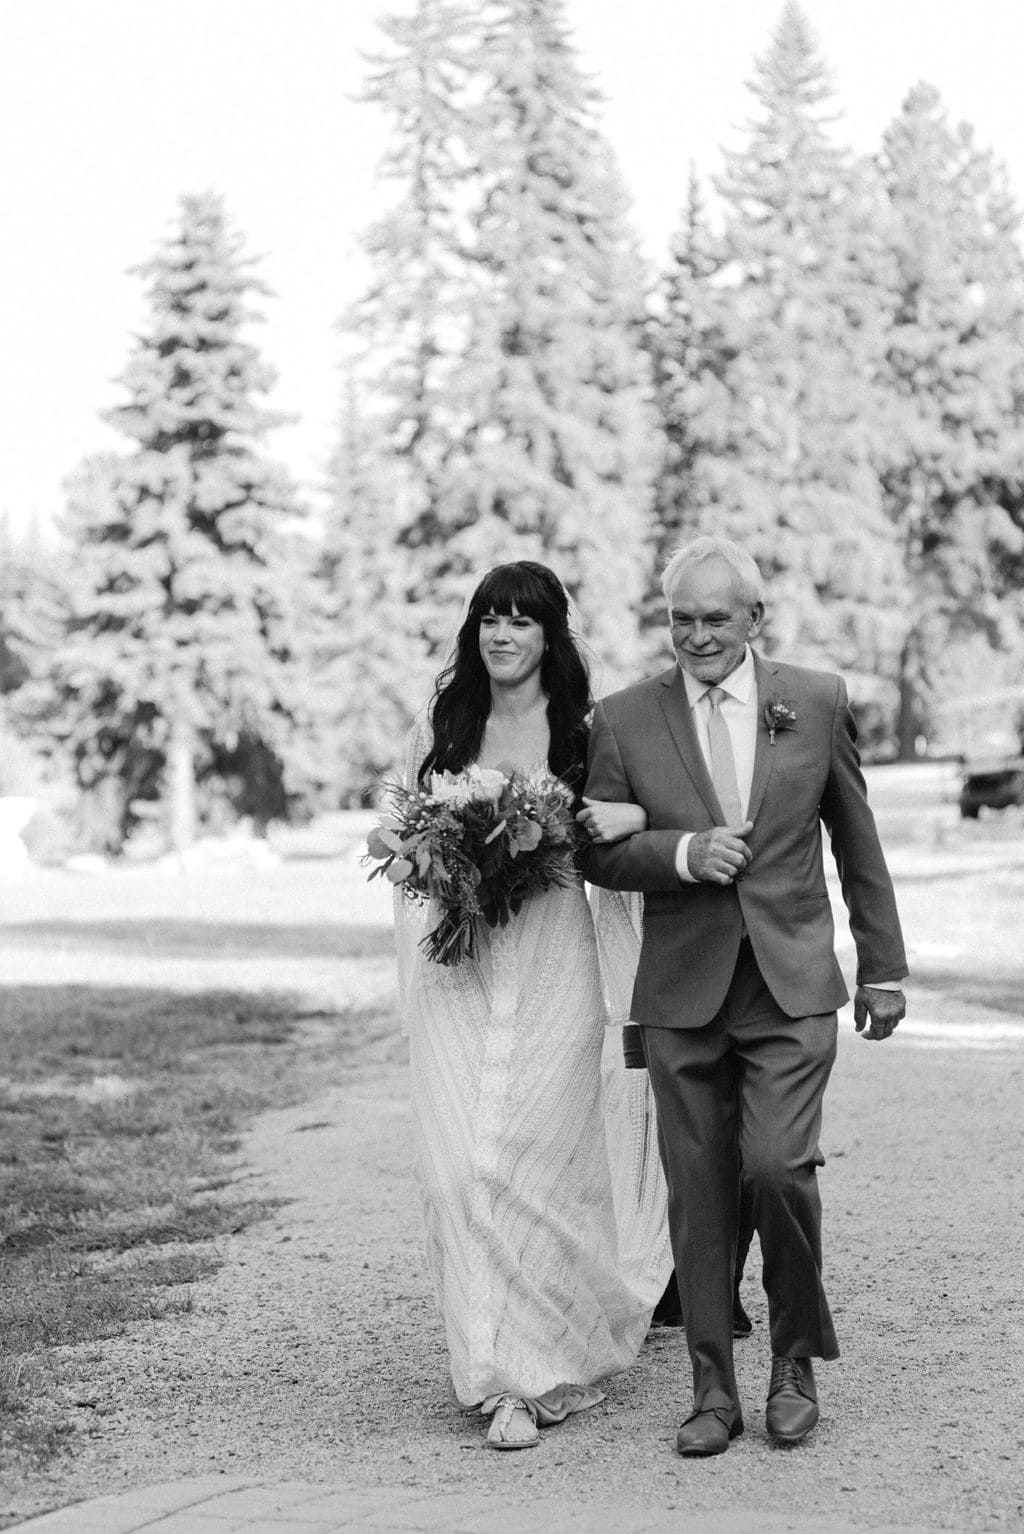 Bride walks down ceremony aisle with her dad